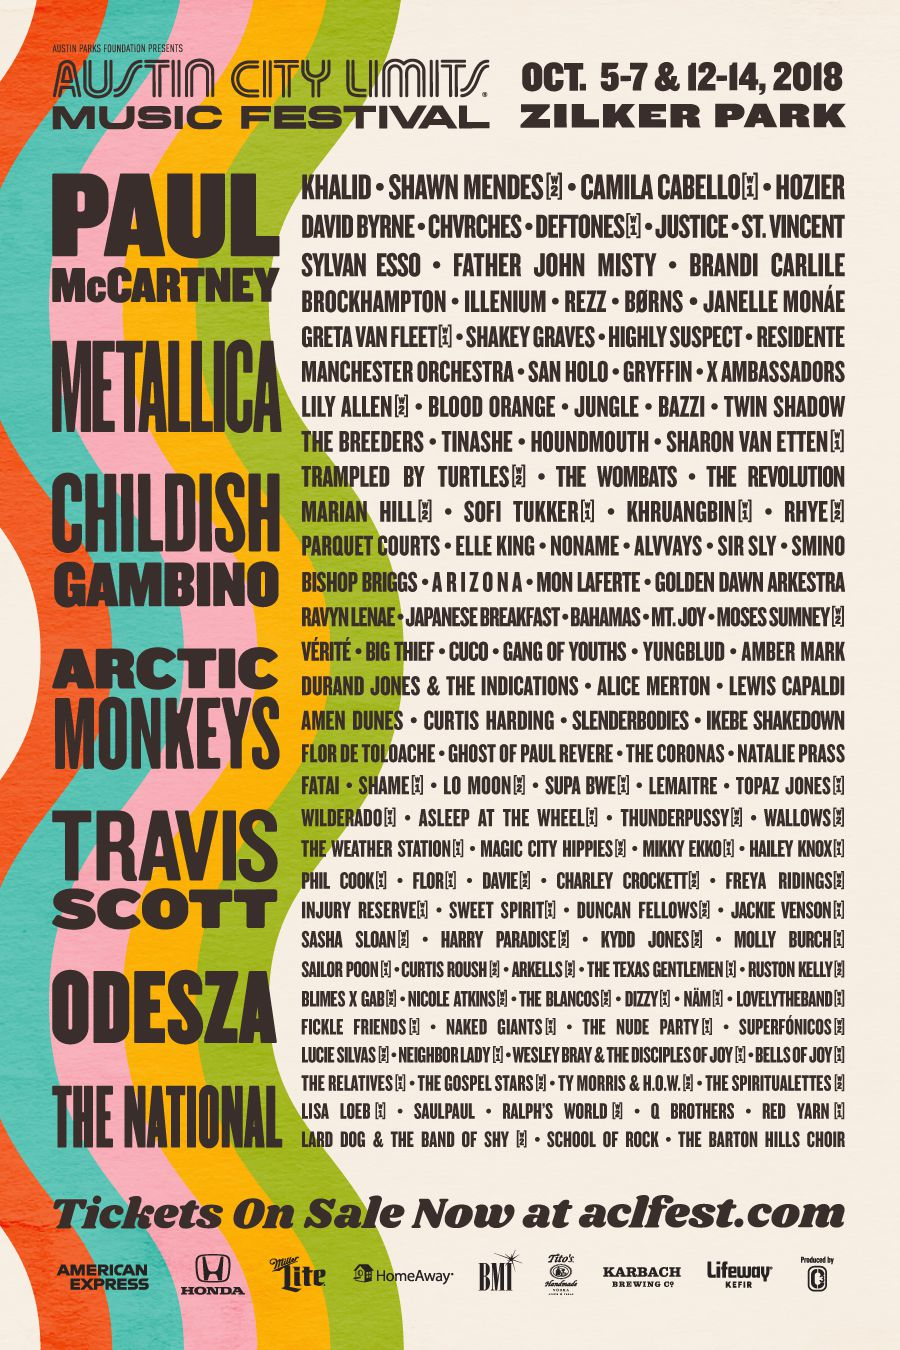 The 2018 ACL lineup has been announced. Prominent musicians like Childish Gambino, Khalid, and Shawn Mendes will be performing.